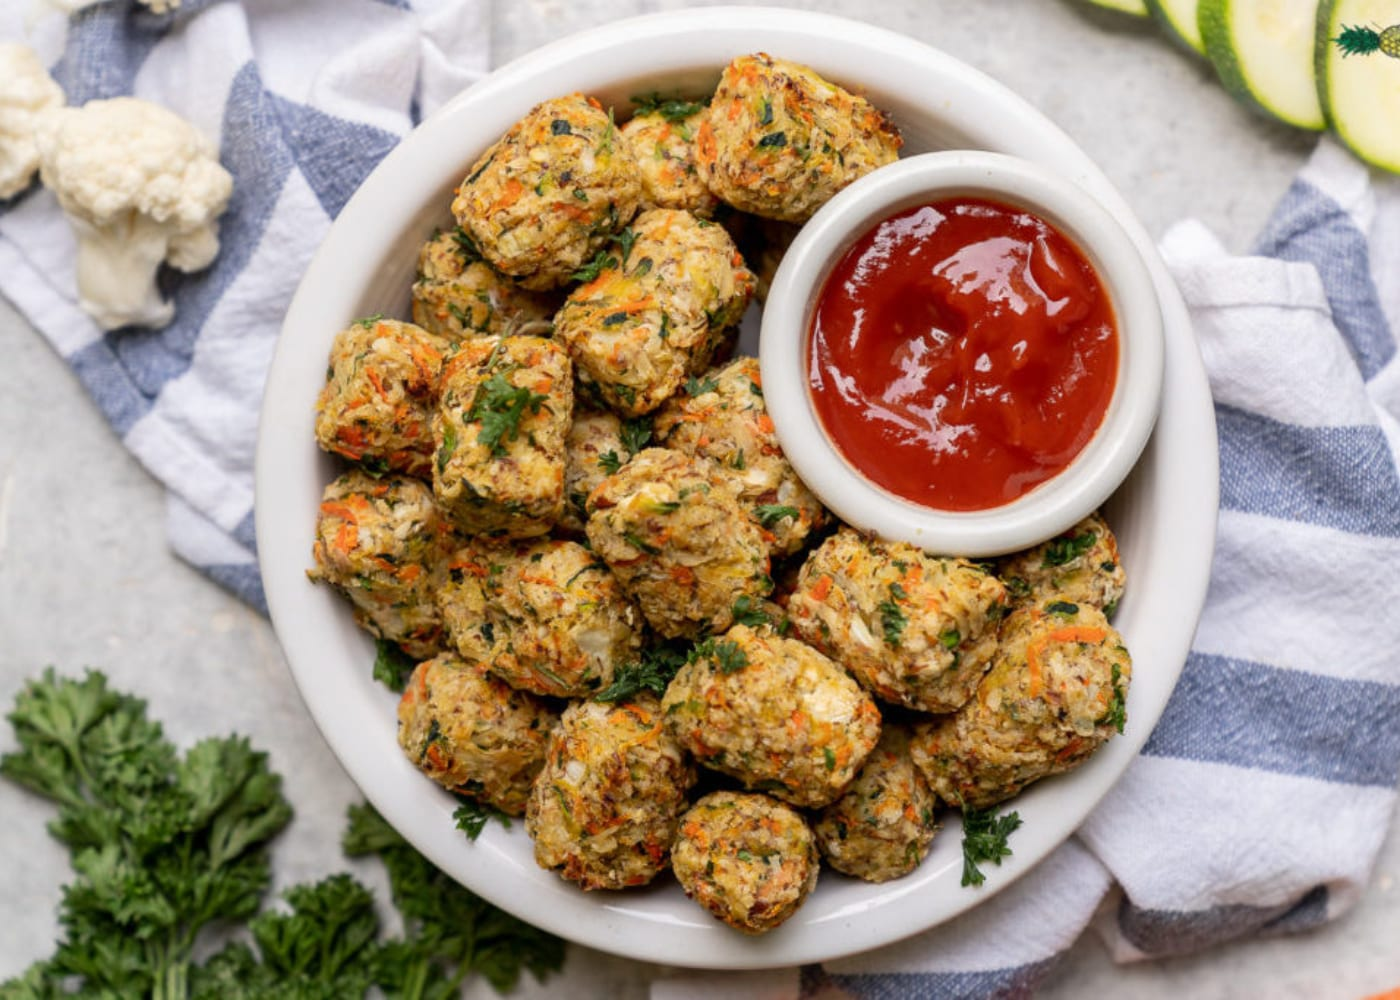 meat-free meals for kids vegetable tater tots